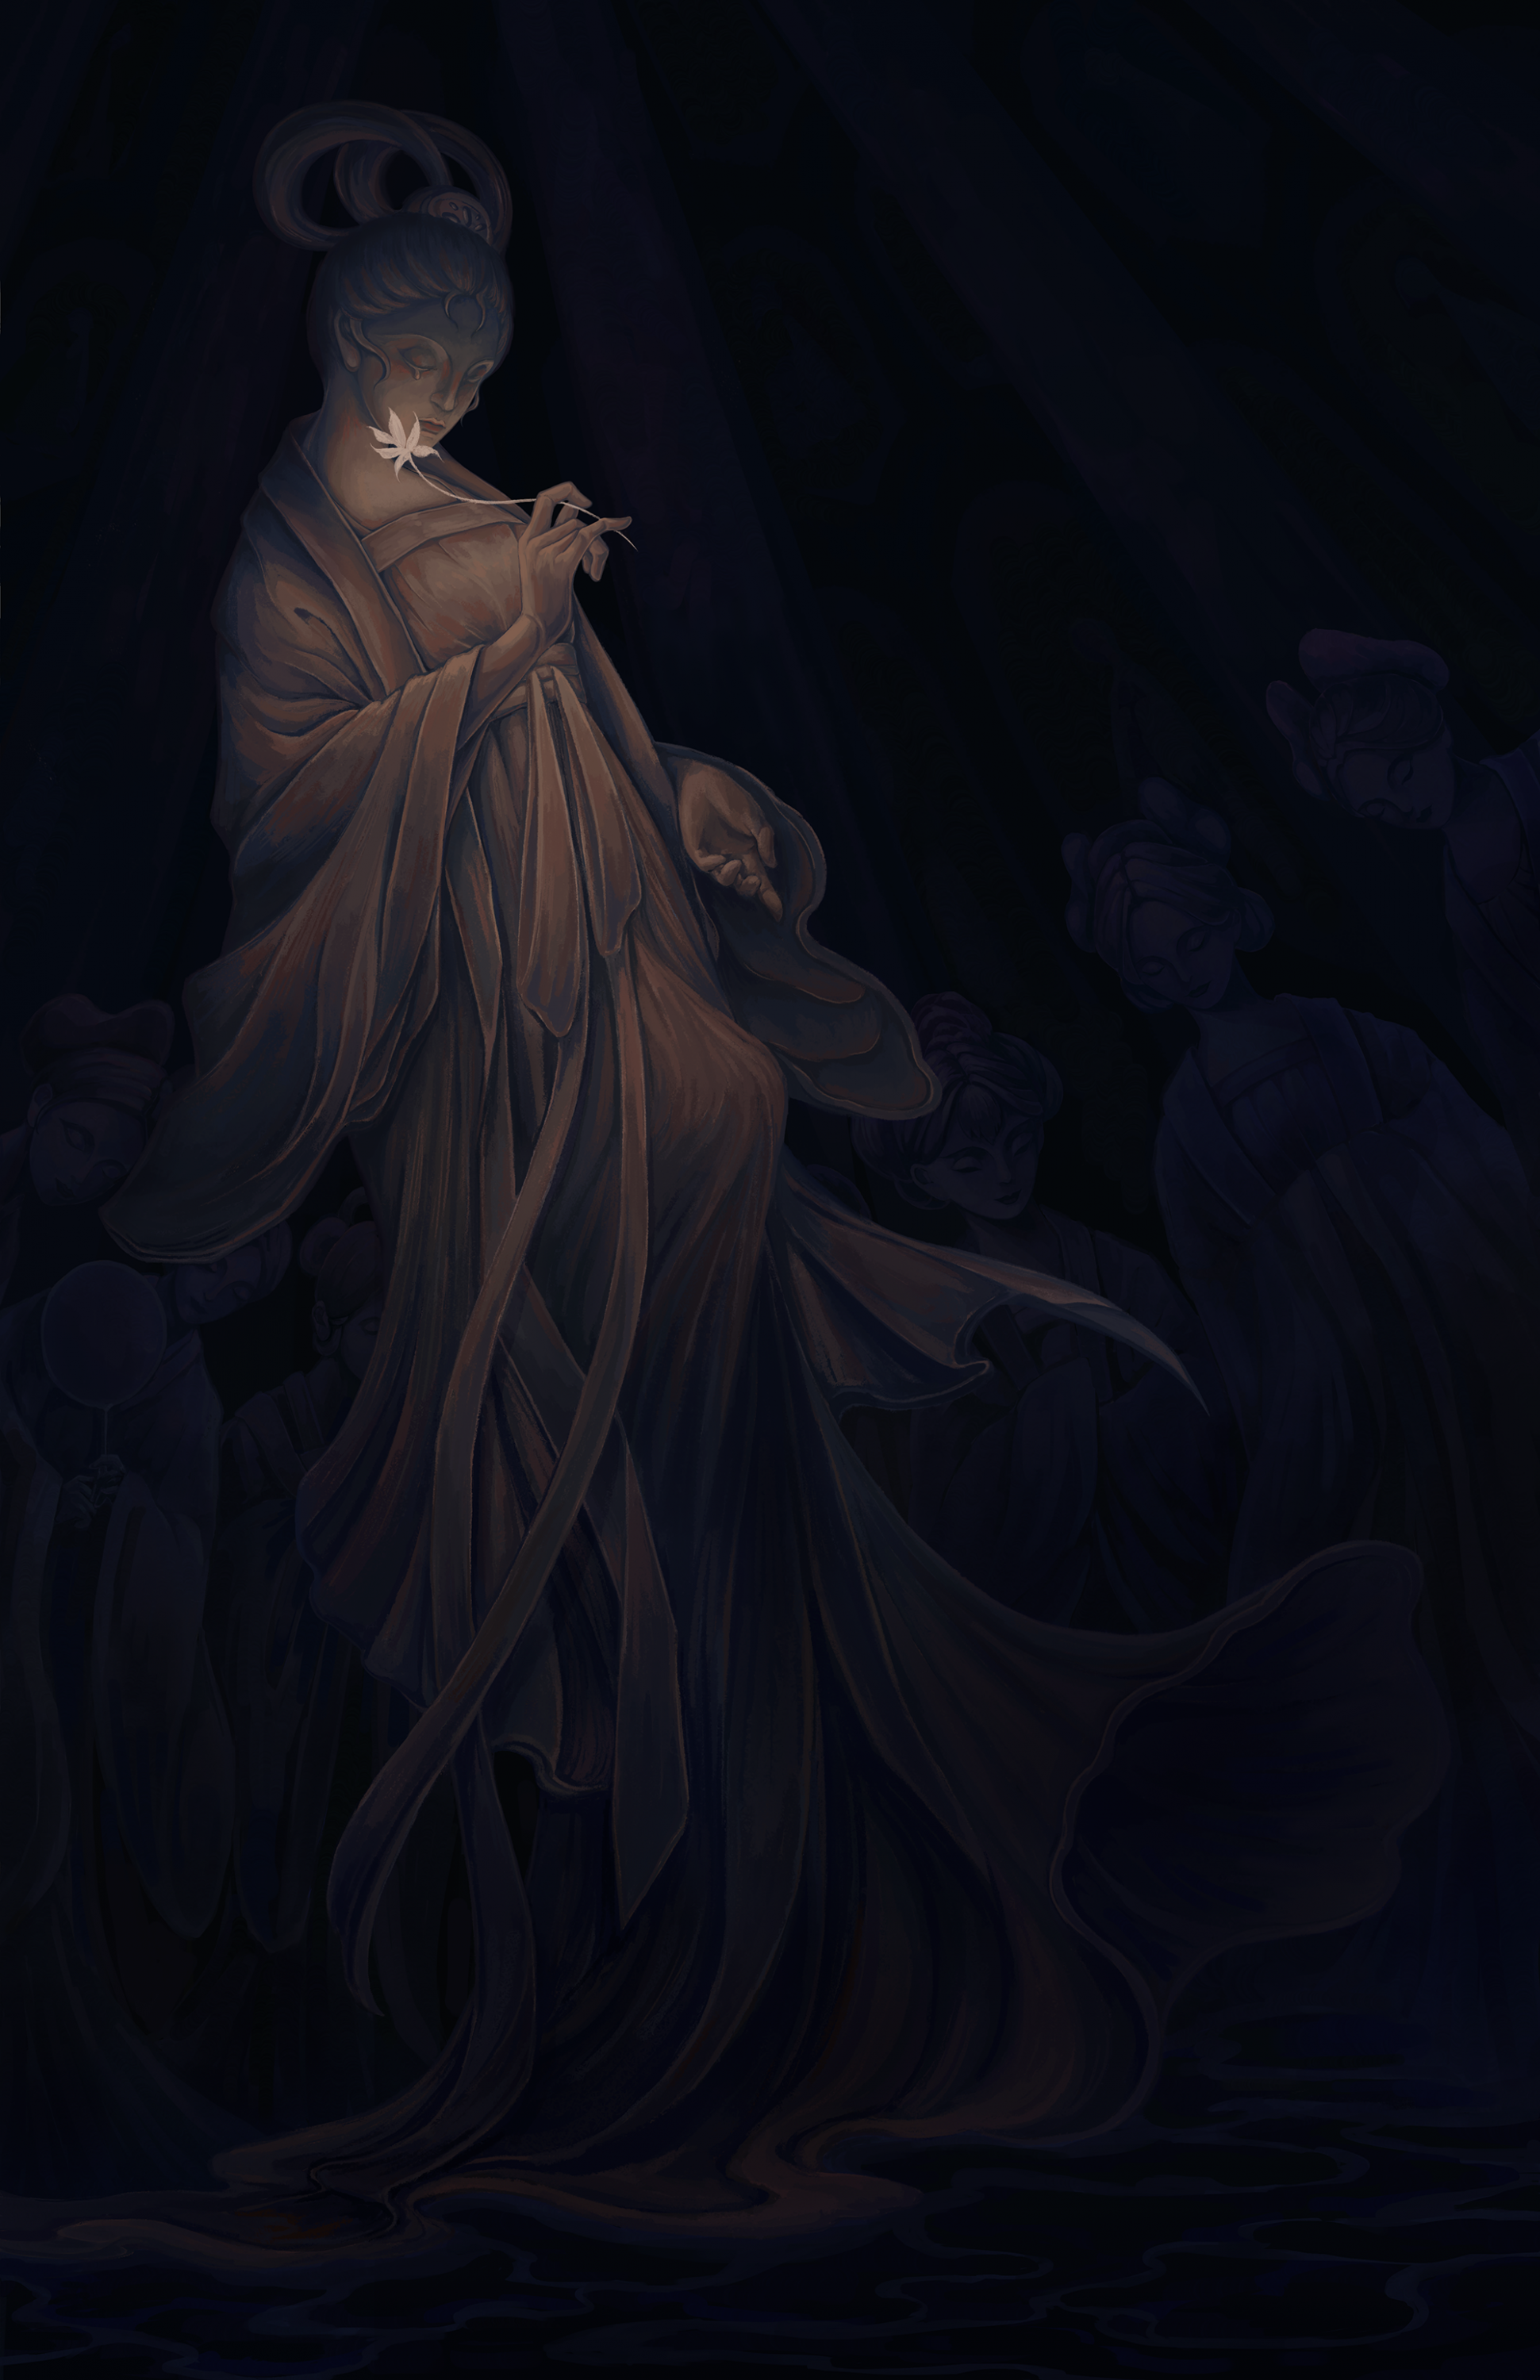 As times change, people now have forgotten the sacred cave where they worshiped their gods and goddesses. After other gods and goddesses left, the faint light from the flower held by the last goddess illuminated her face and her tear in the dimness.